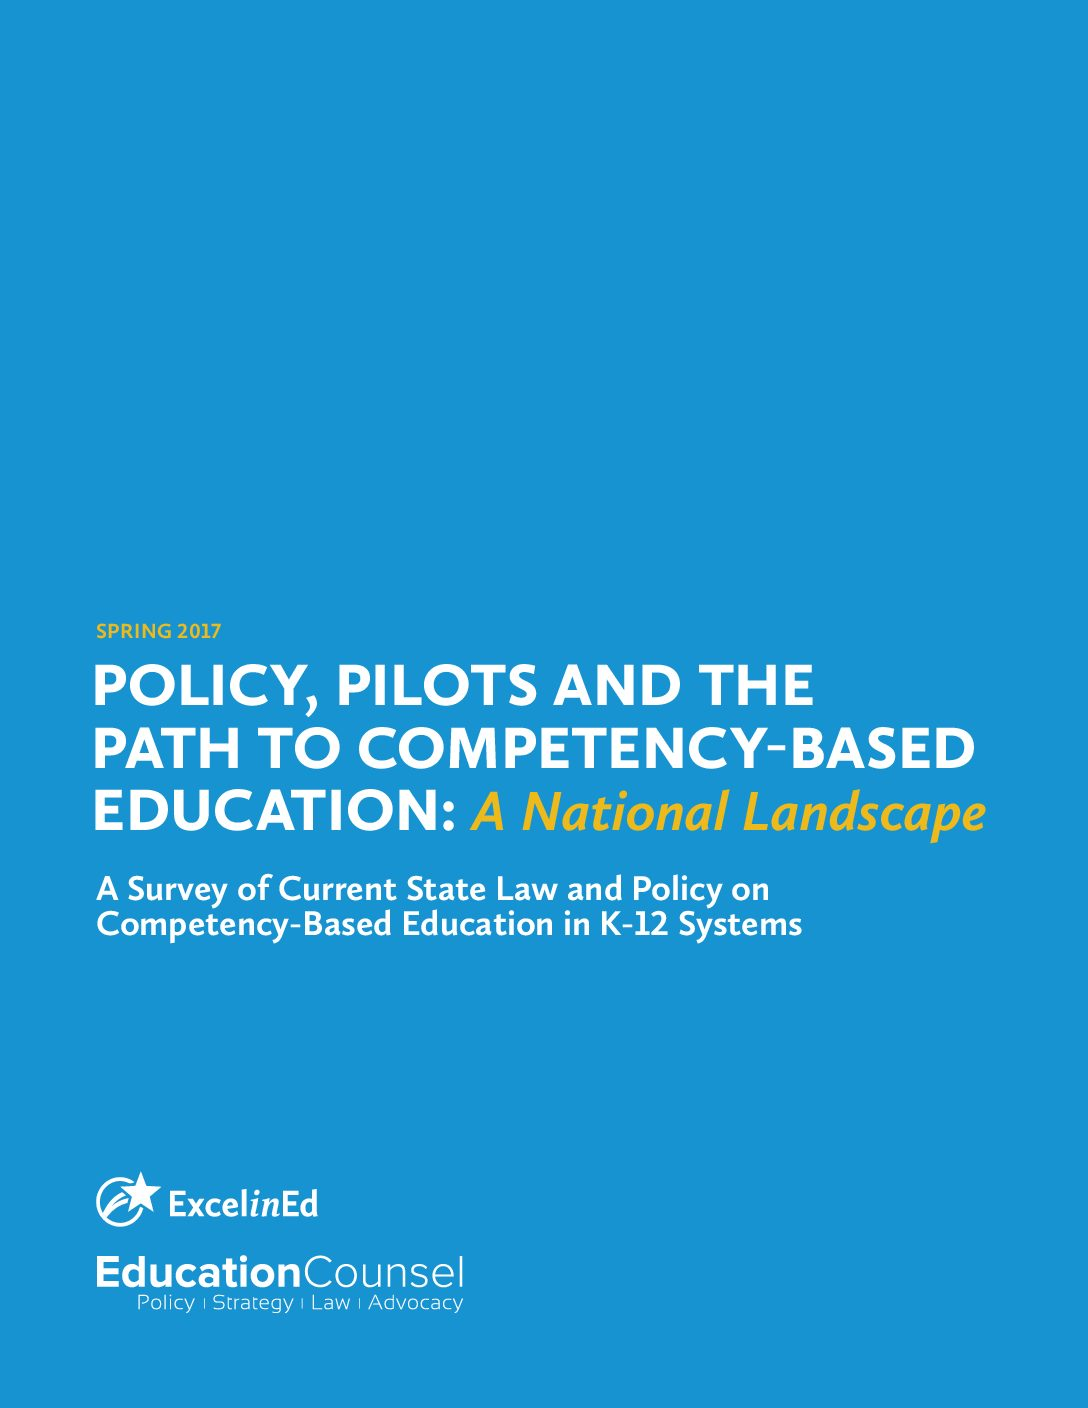 Policy Pilots and the Path to Competency-Based Education National Landscape – Spring 2017>									 									</a> 									<a href=